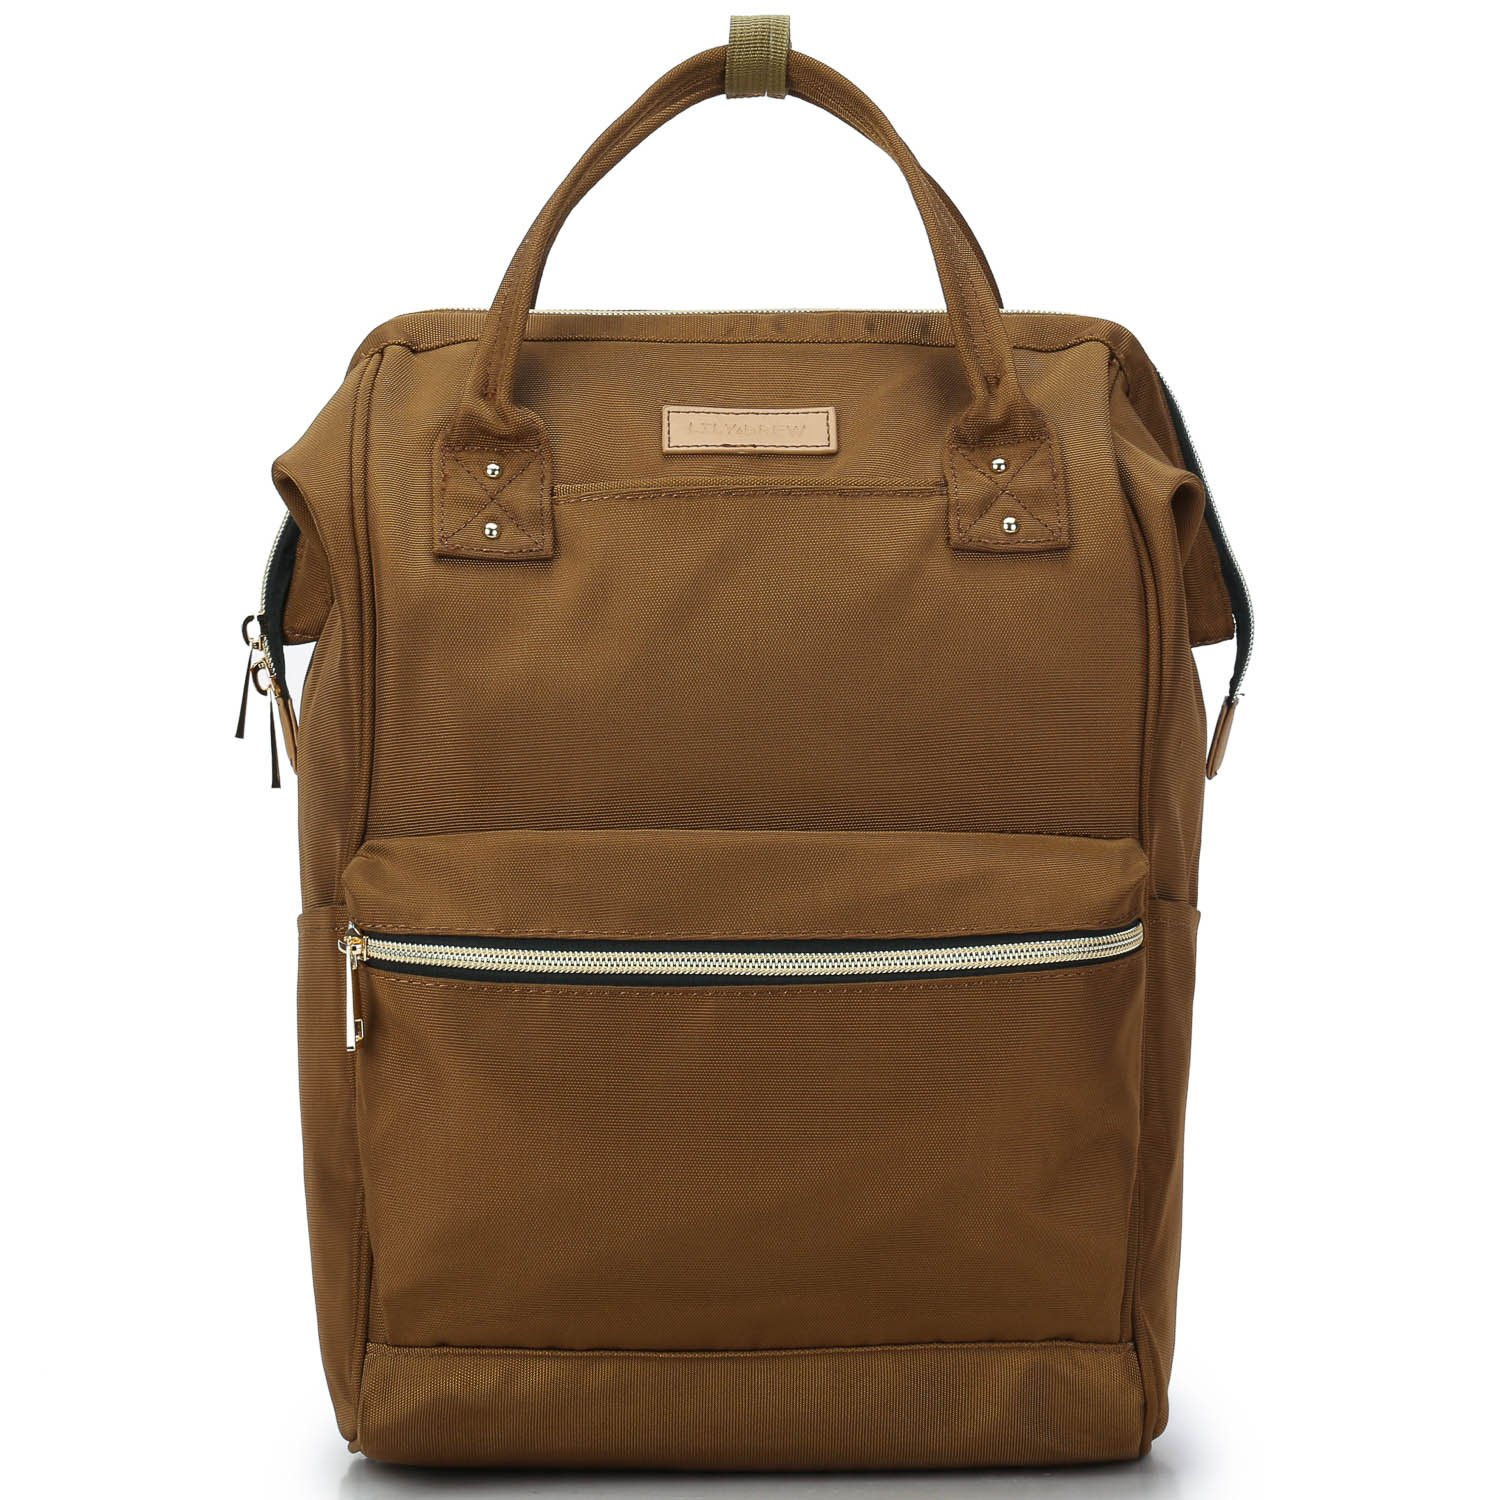 Lily & Drew Casual Travel Daypack School Backpack for Men Women and Laptop Computer, with Doctor Style Top Opening (V4 Brown Medium)